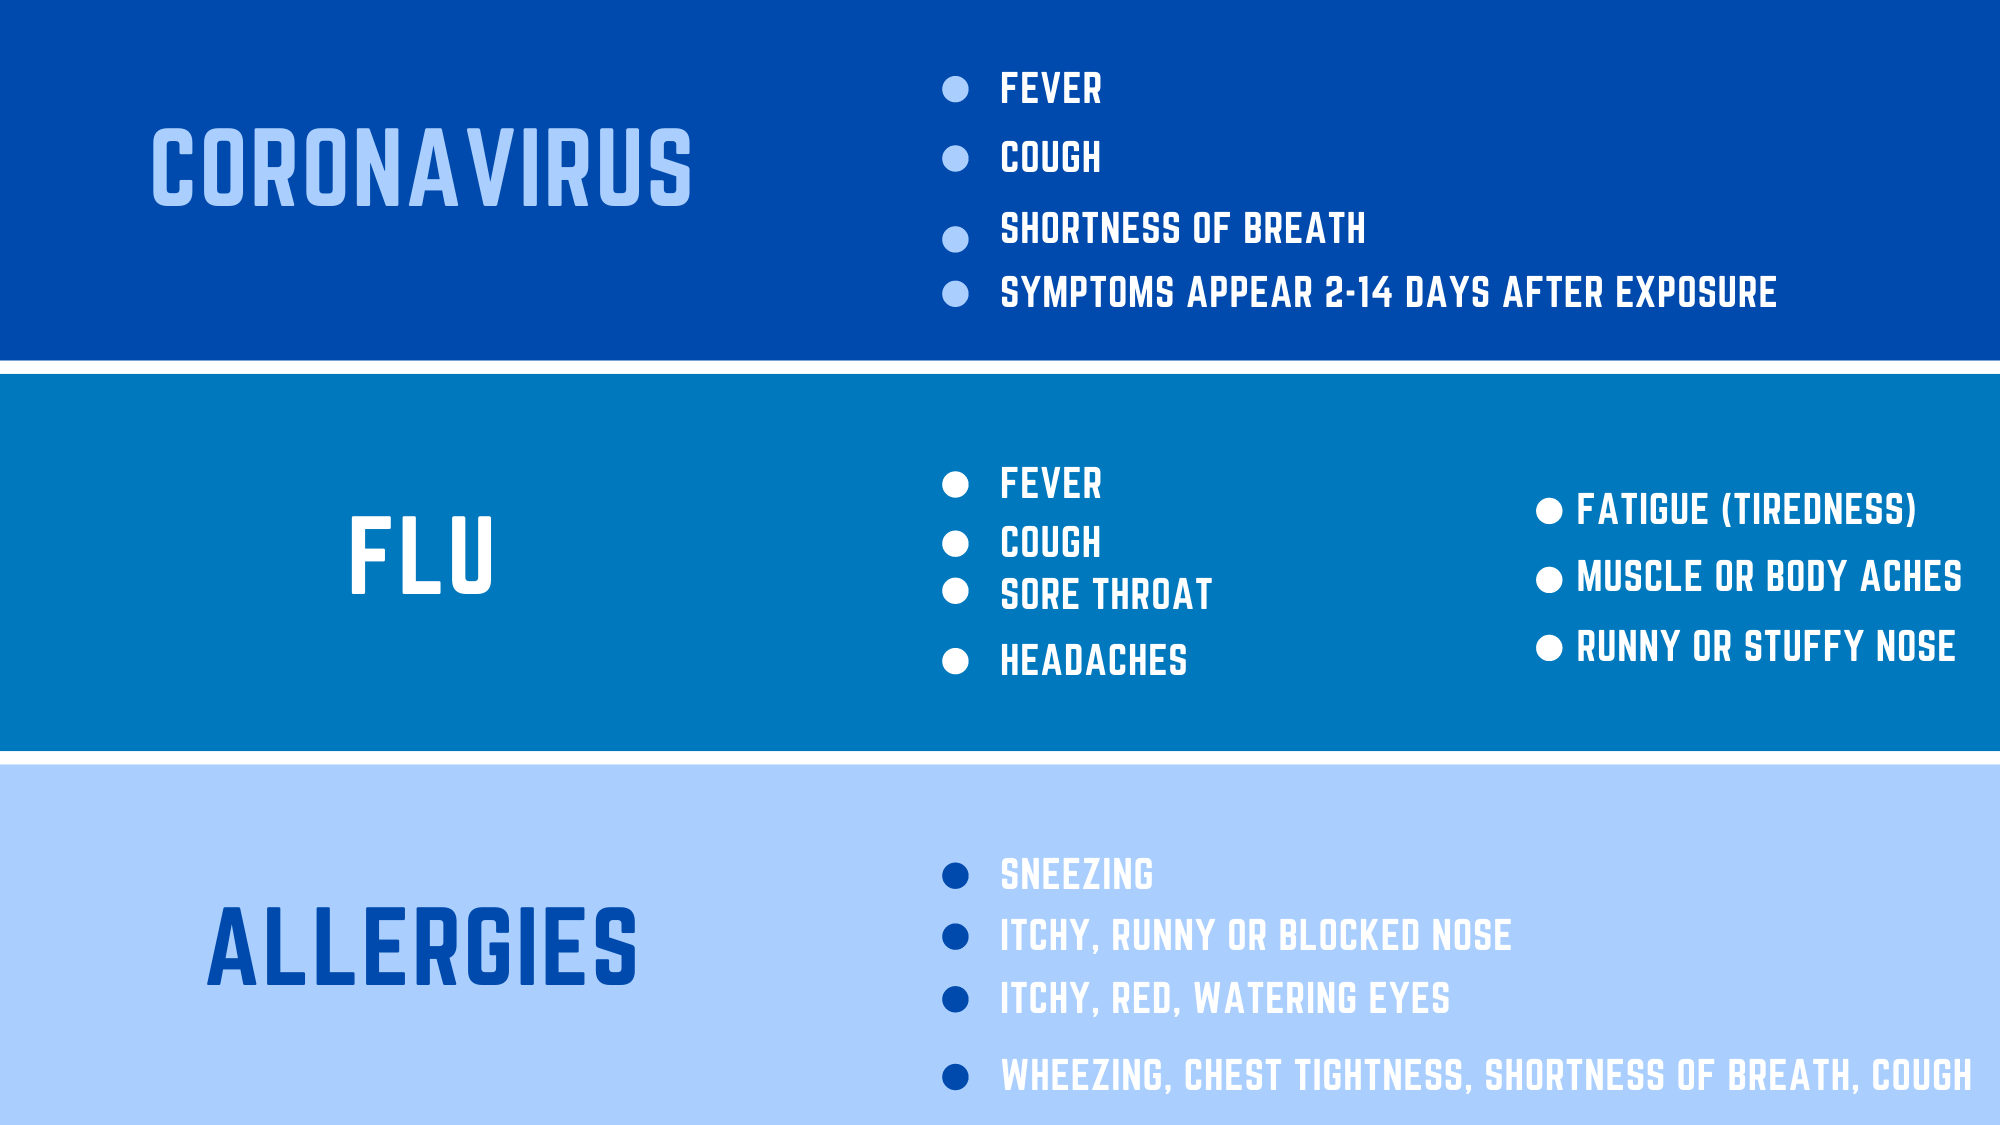 Doctors Trying To Clear Up The Confusion Between Covid 19 And Flu